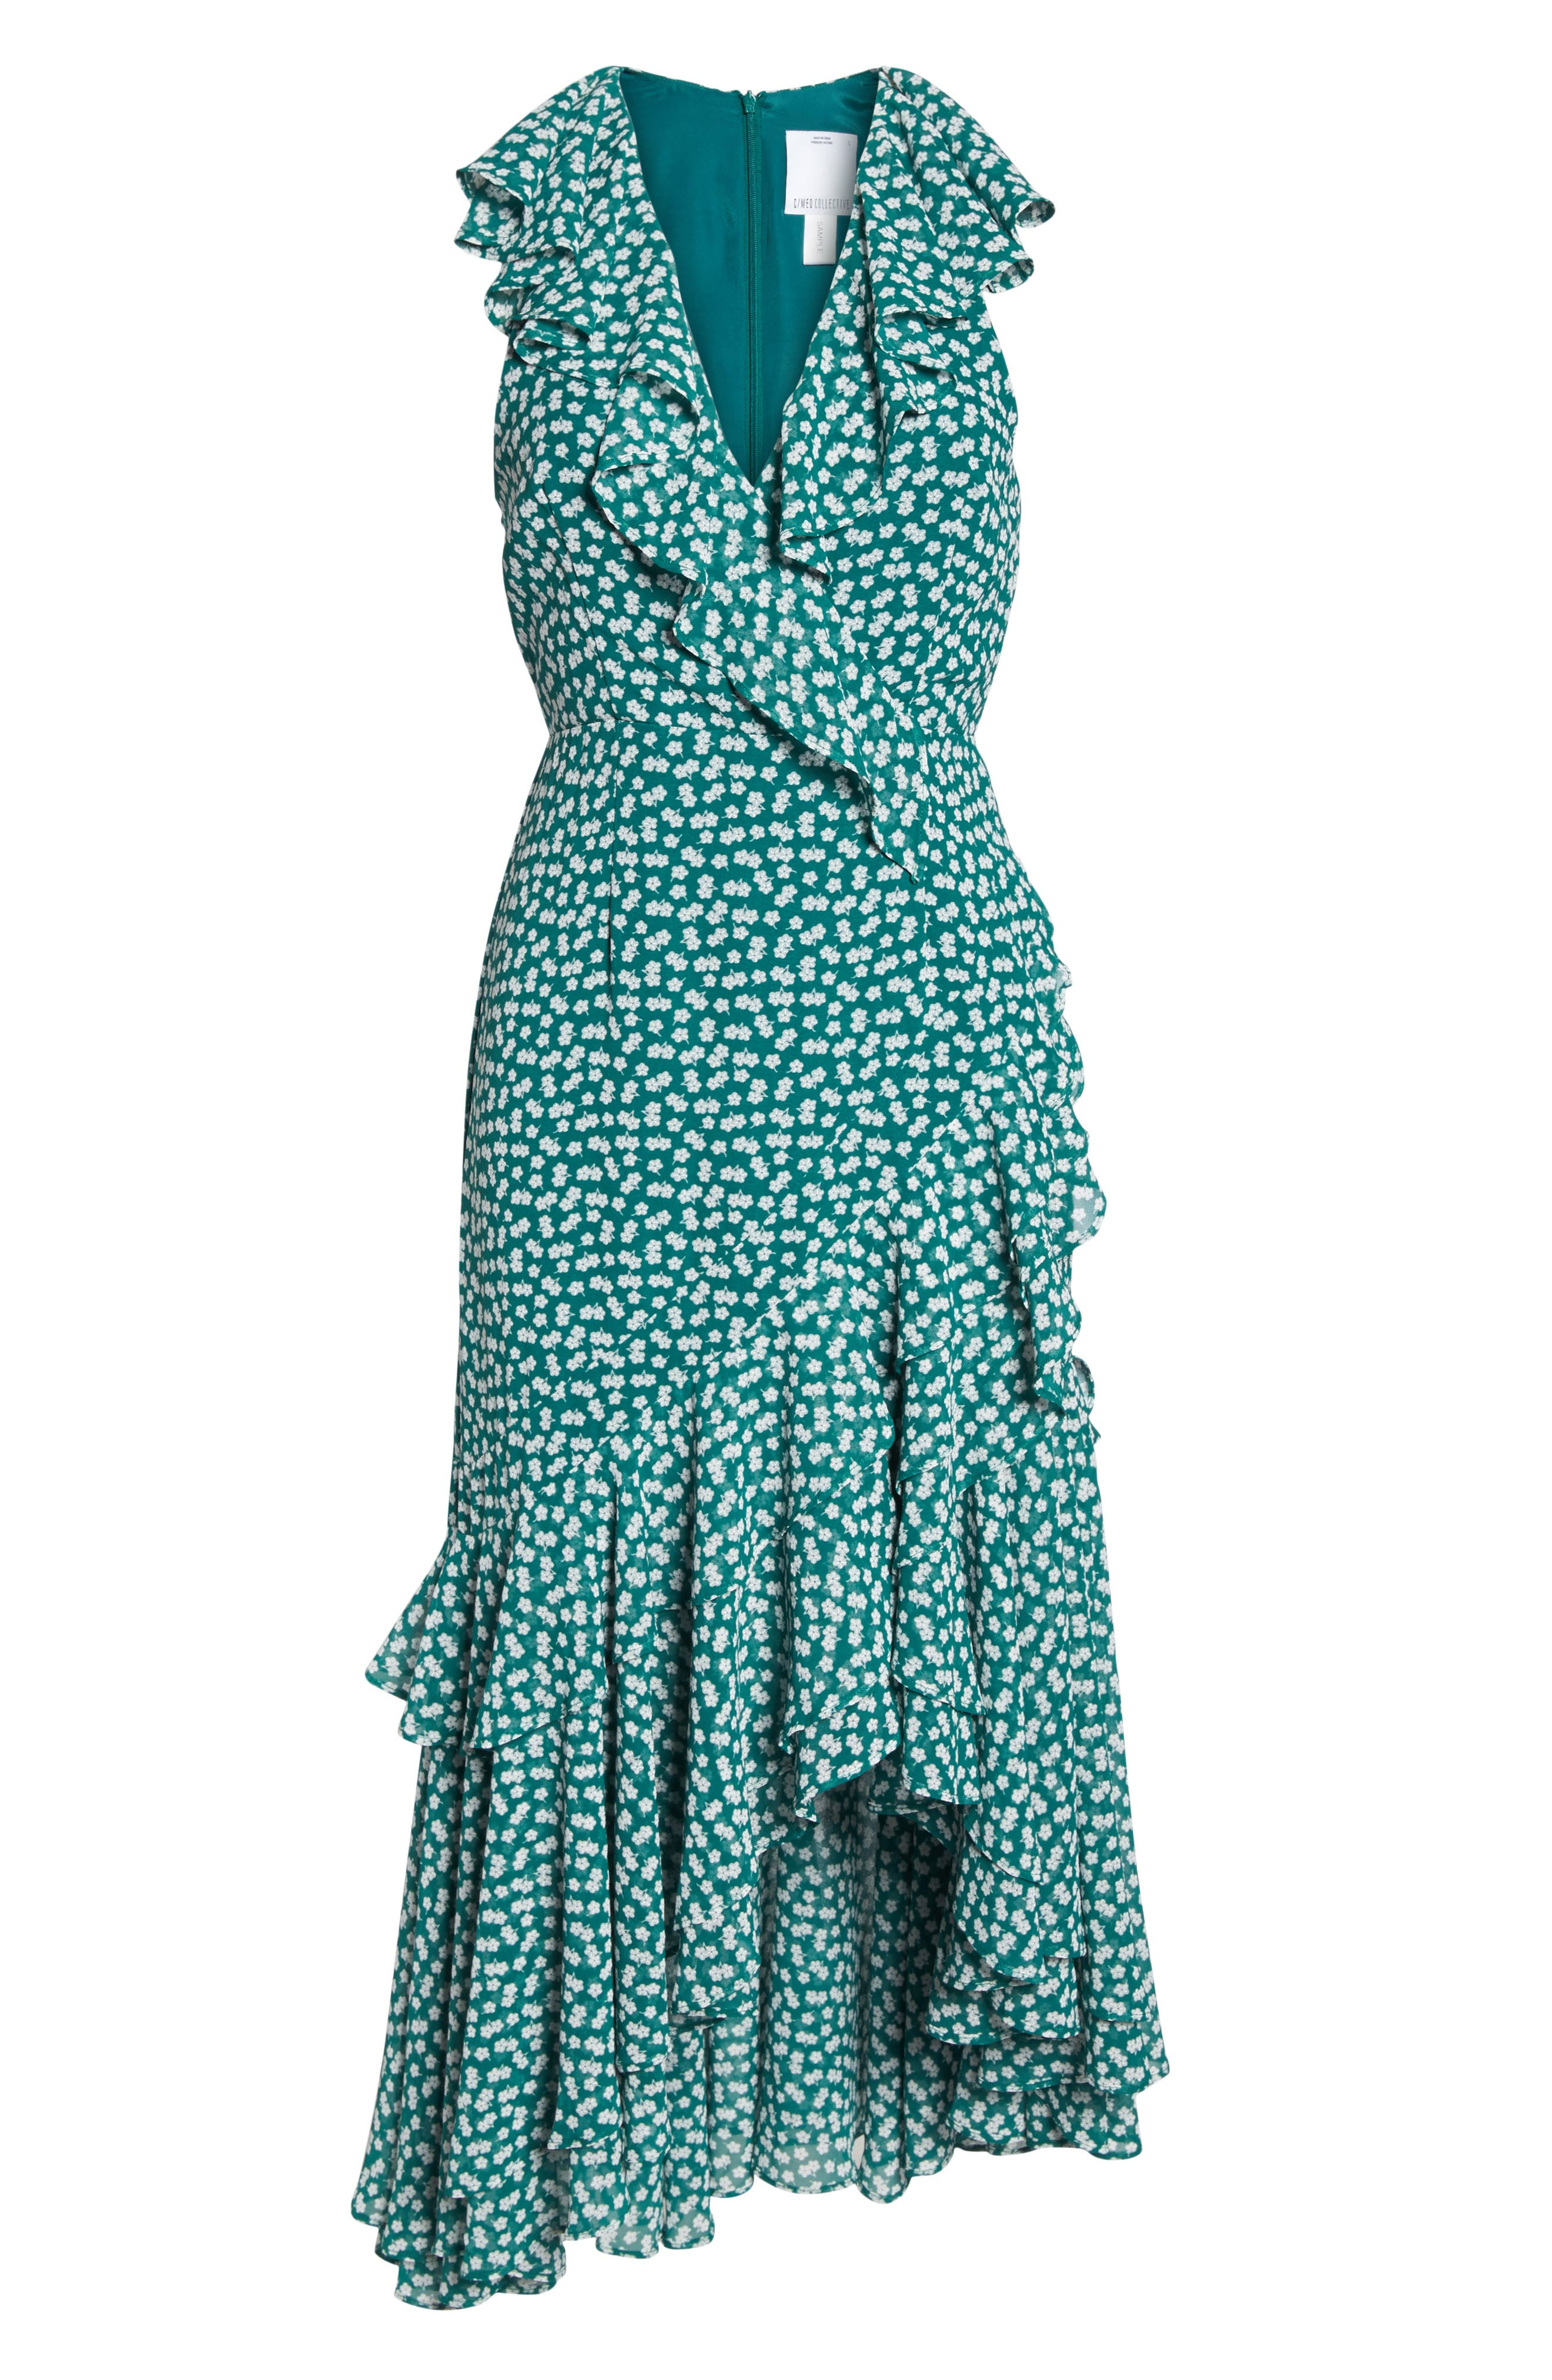 Be About You Ruffle Midi Dress,                             Alternate thumbnail 6, color,                             303